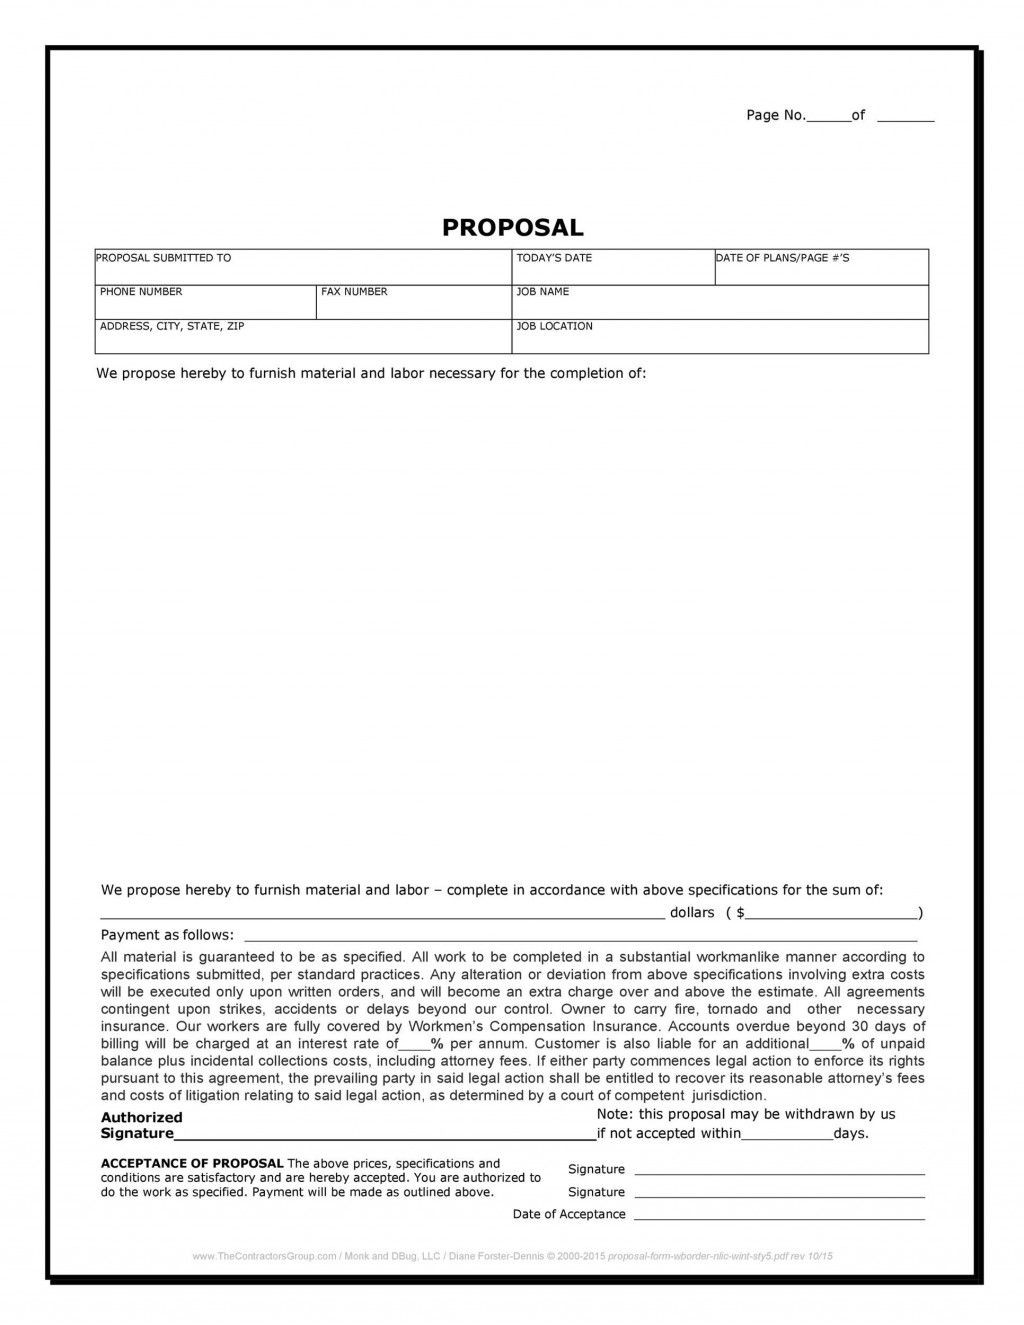 005 Exceptional Microsoft Word Job Proposal Template Sample Large